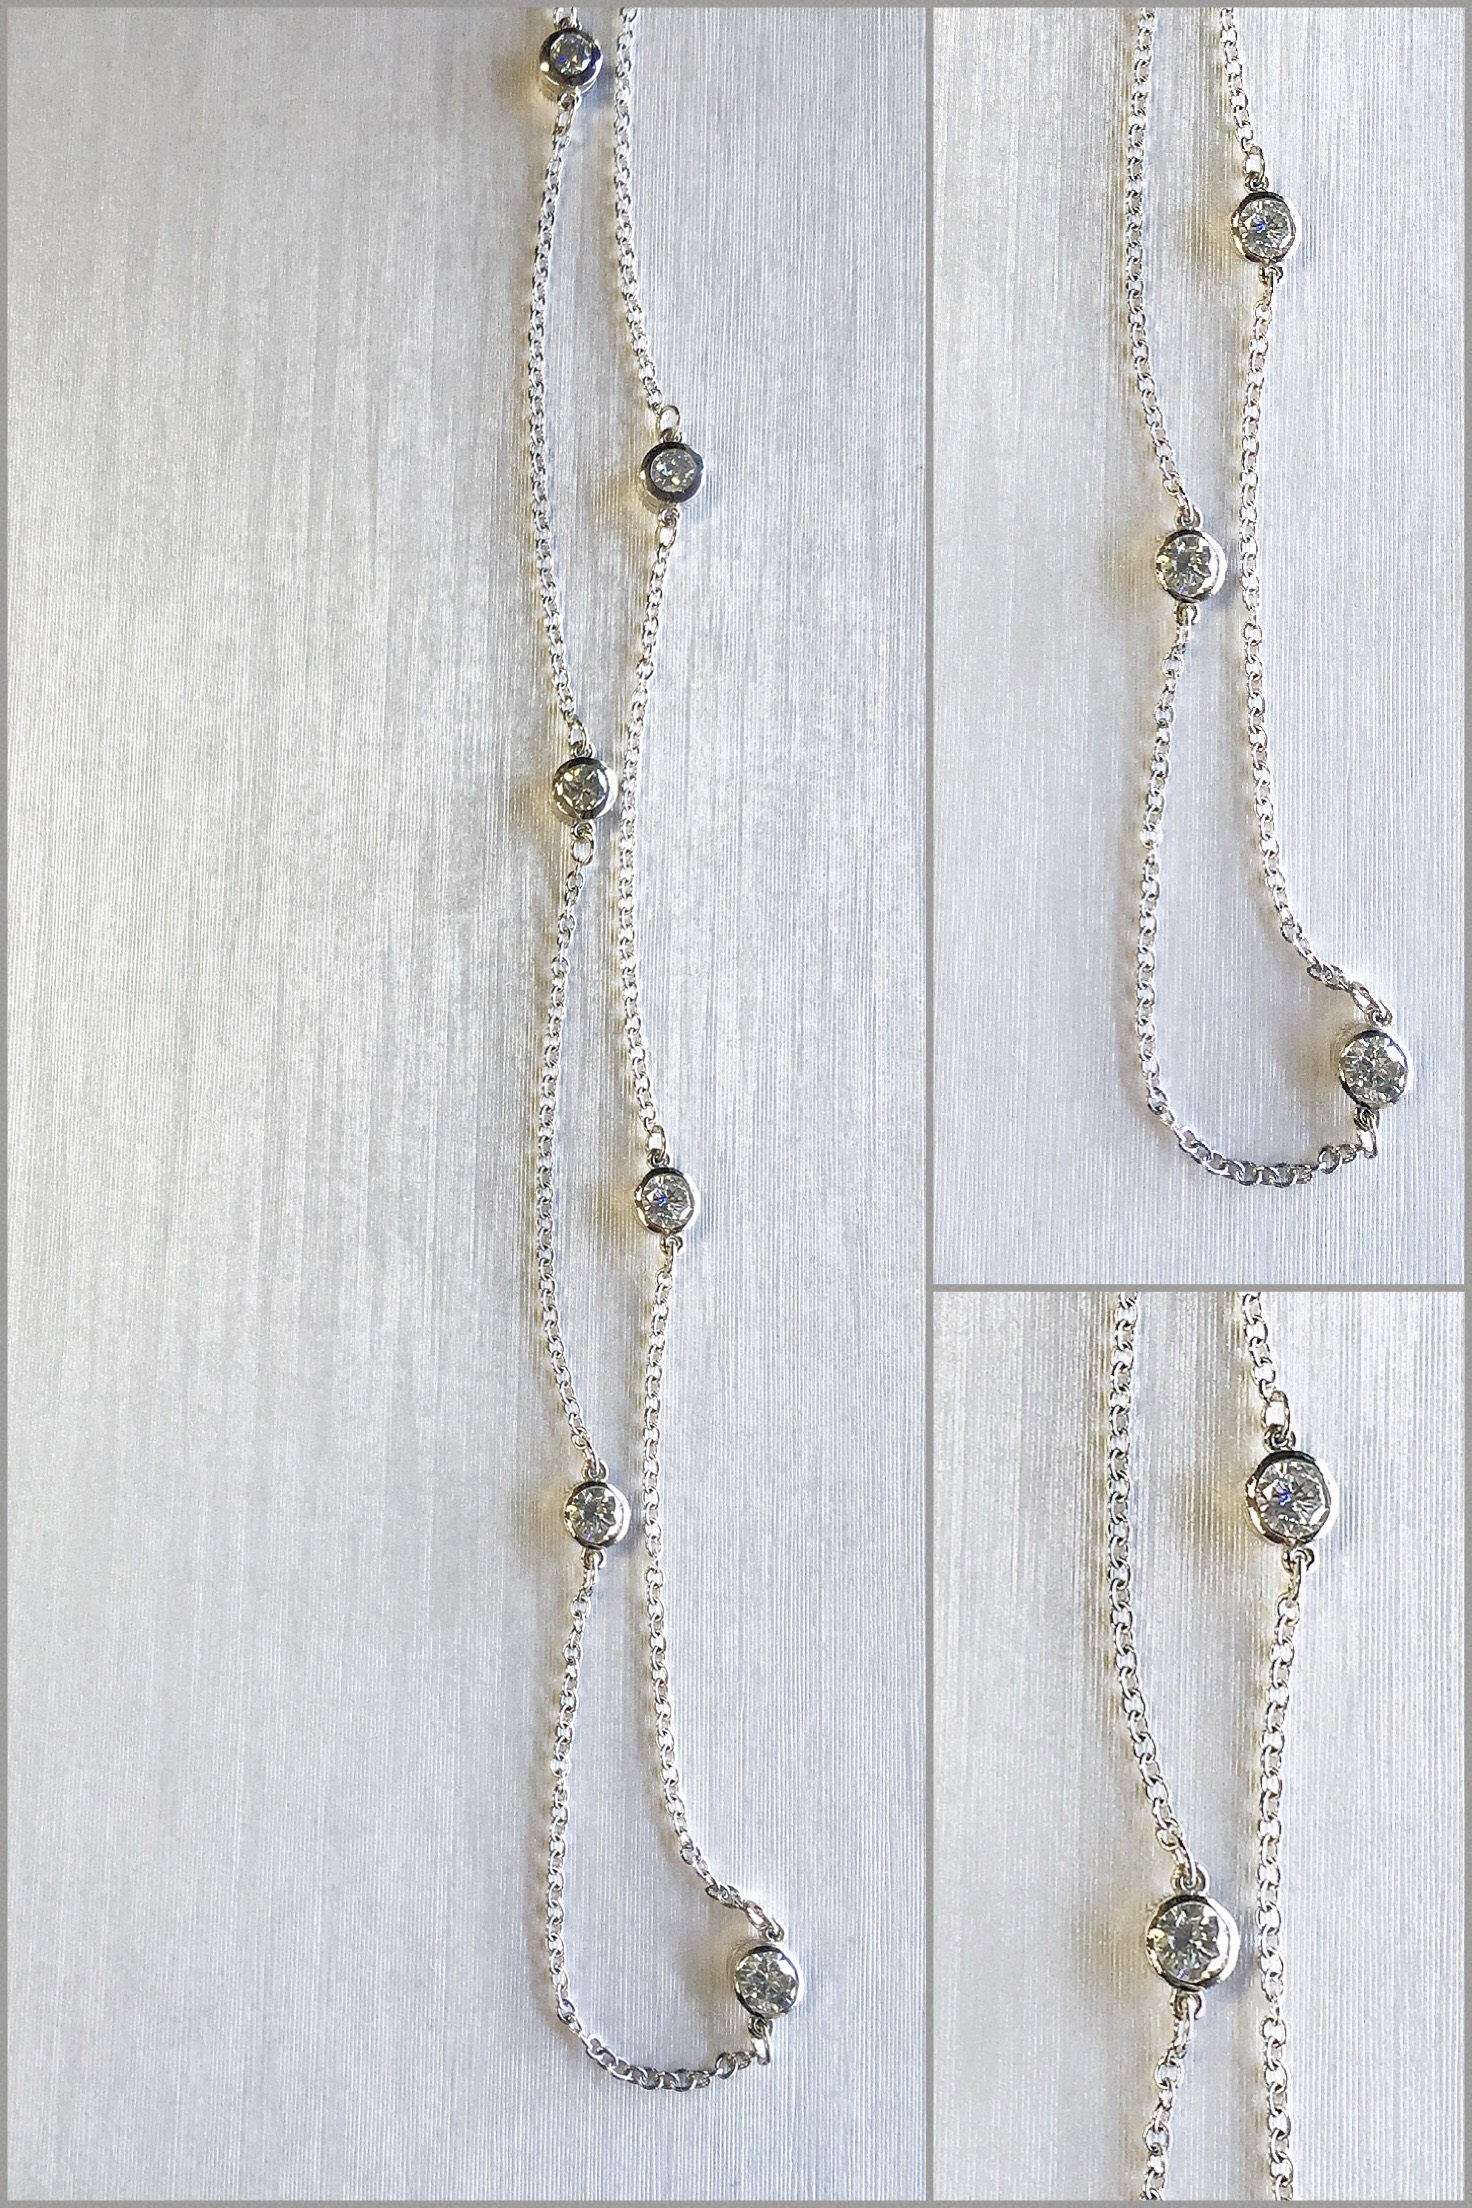 14K White Gold Diamonds By The Yard Necklace made with Customers Diamonds.